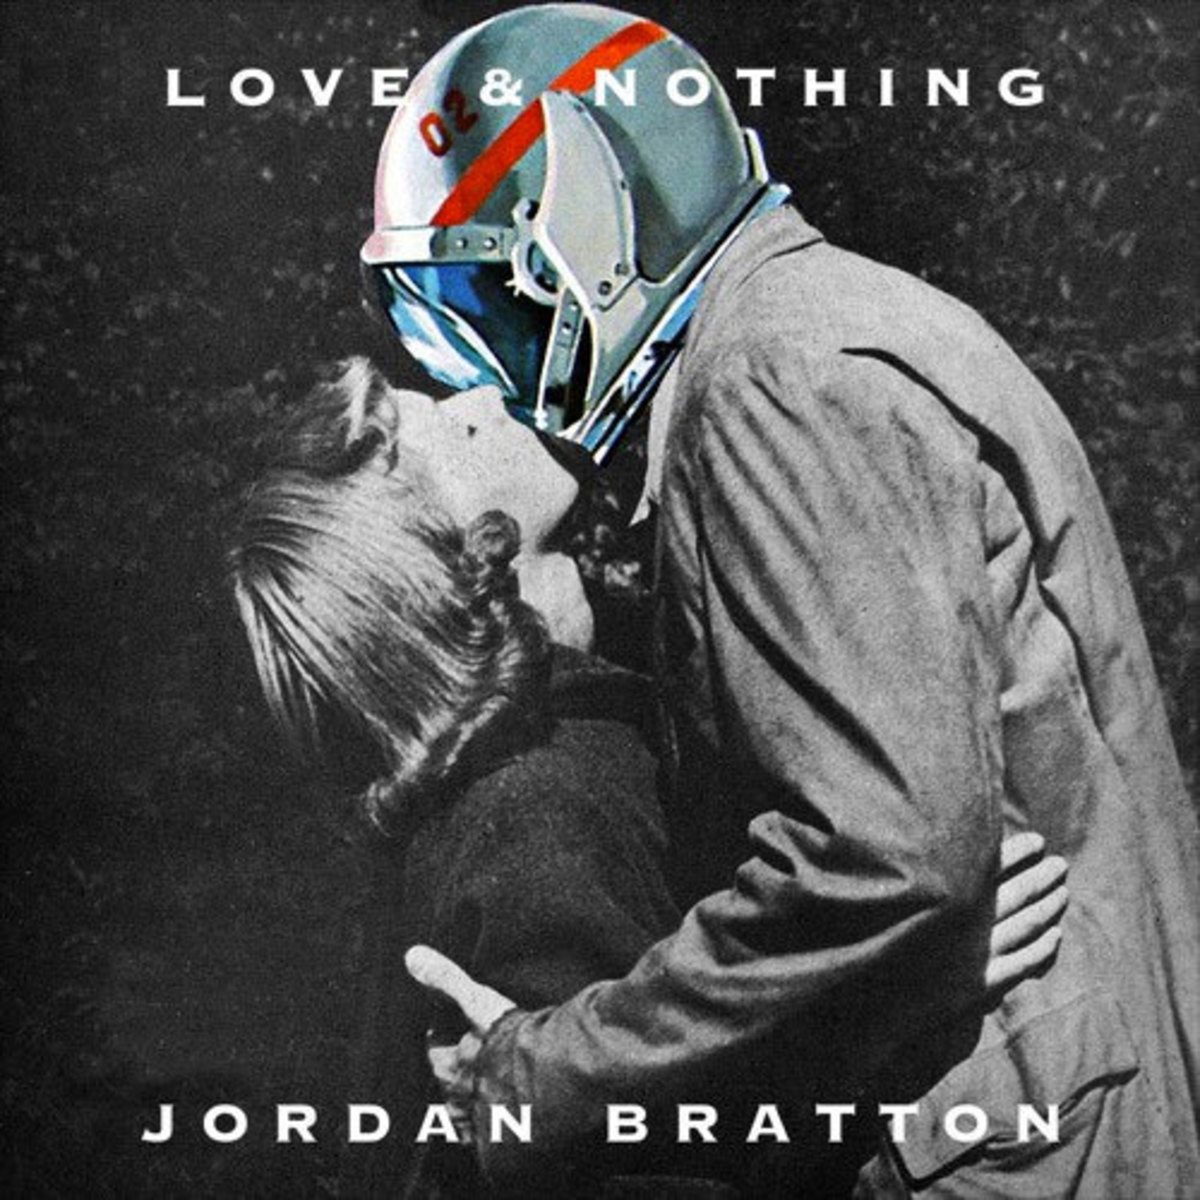 jordan-bratton-love-and-nothing.jpg